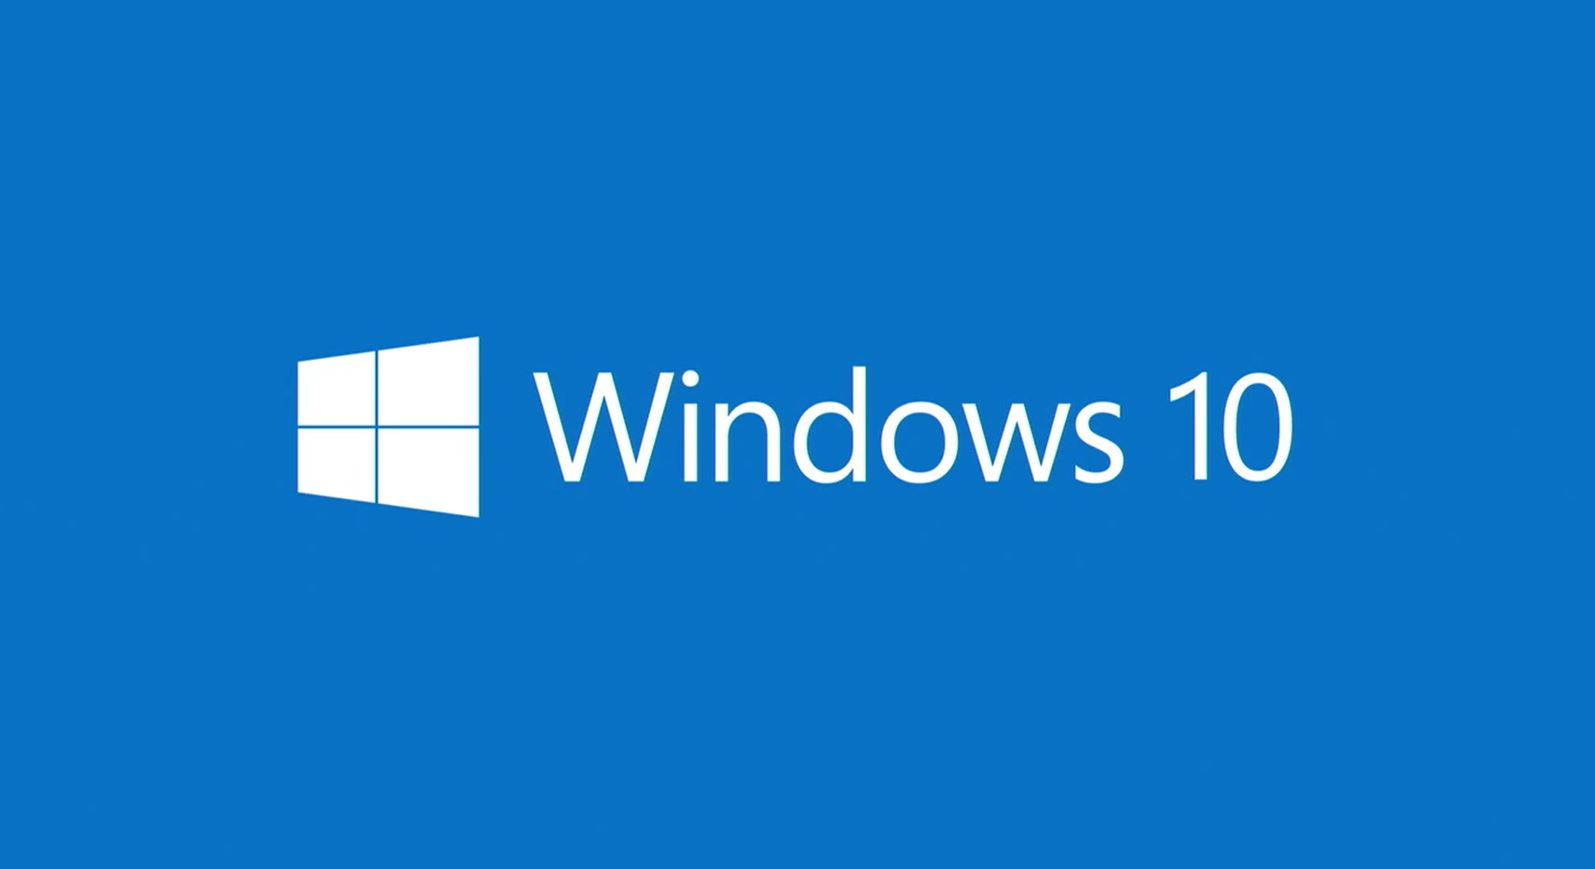 microsoft releases new windows 10 build 9879 isos